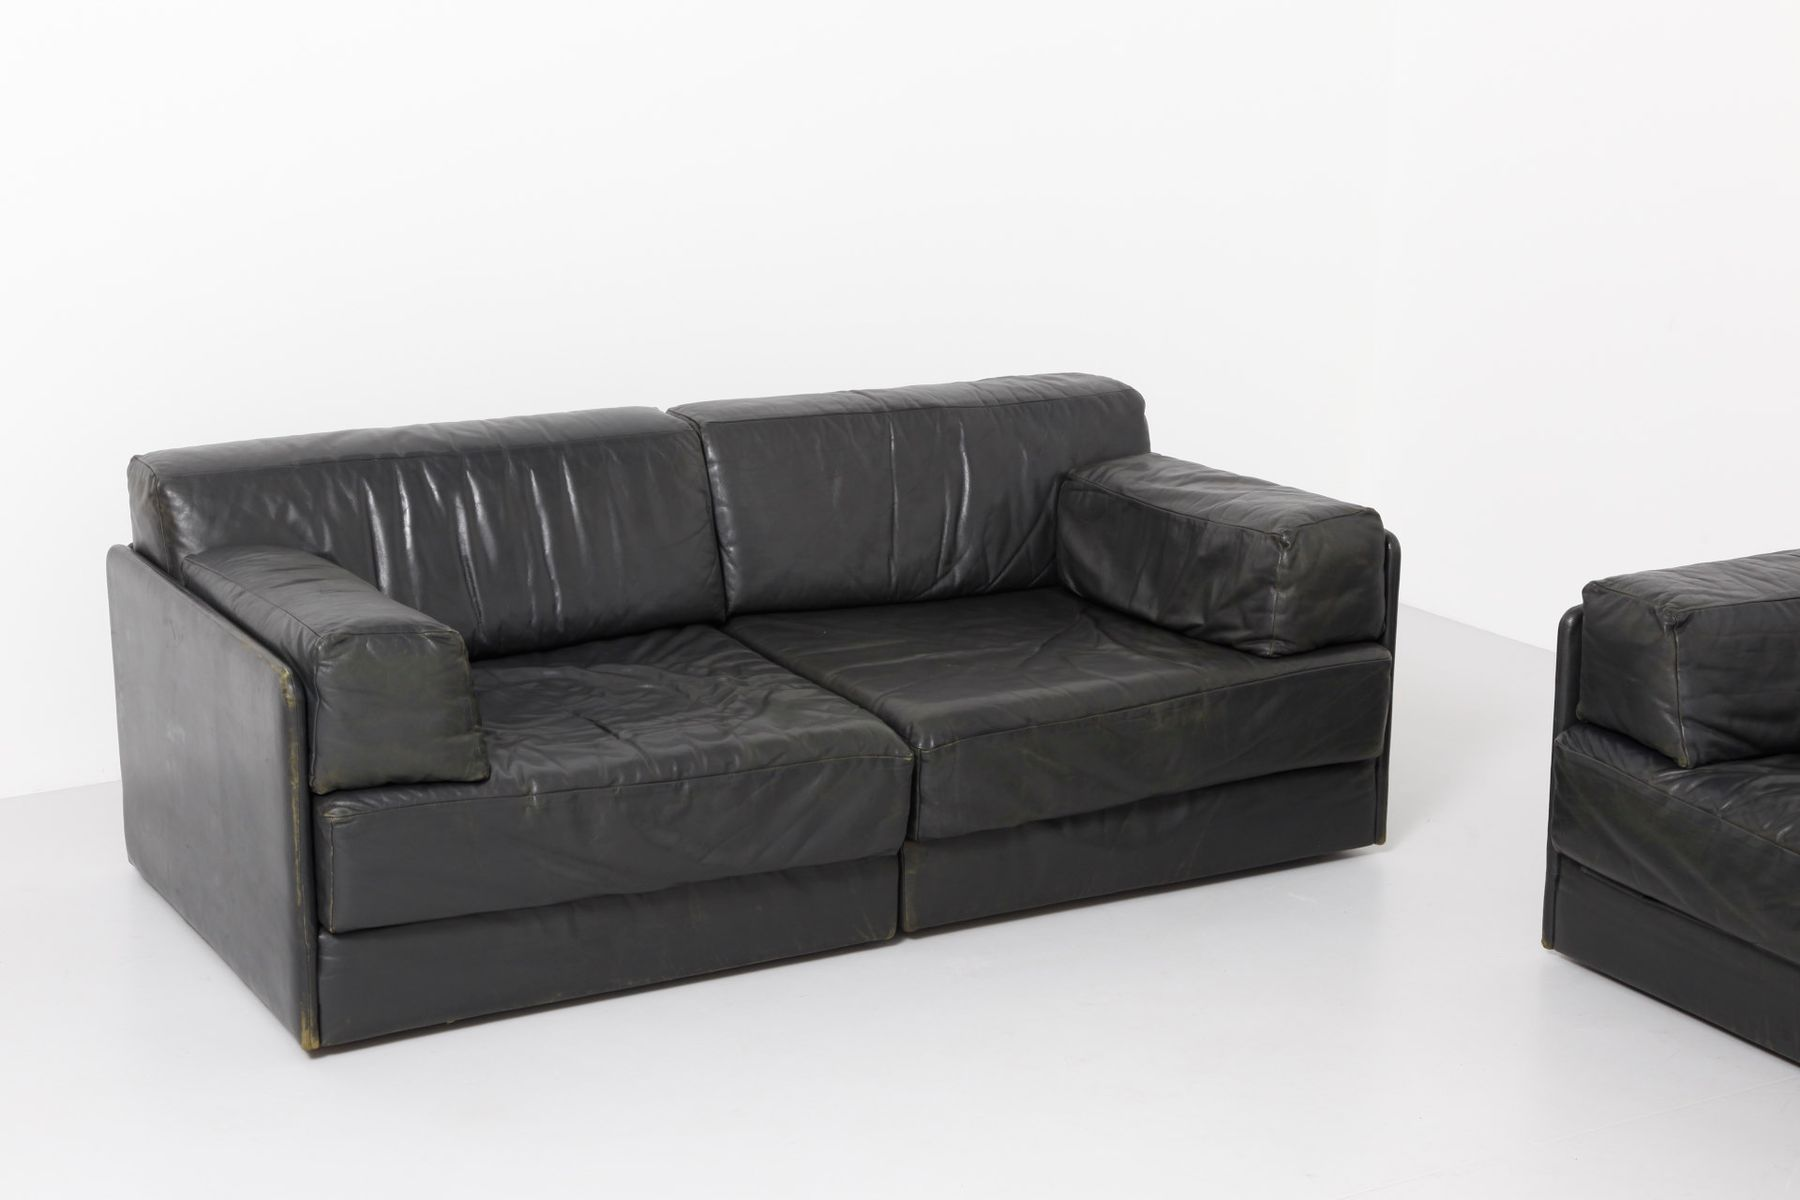 ds 76 sofa elemente von de sede 1960er 5er set bei pamono kaufen. Black Bedroom Furniture Sets. Home Design Ideas